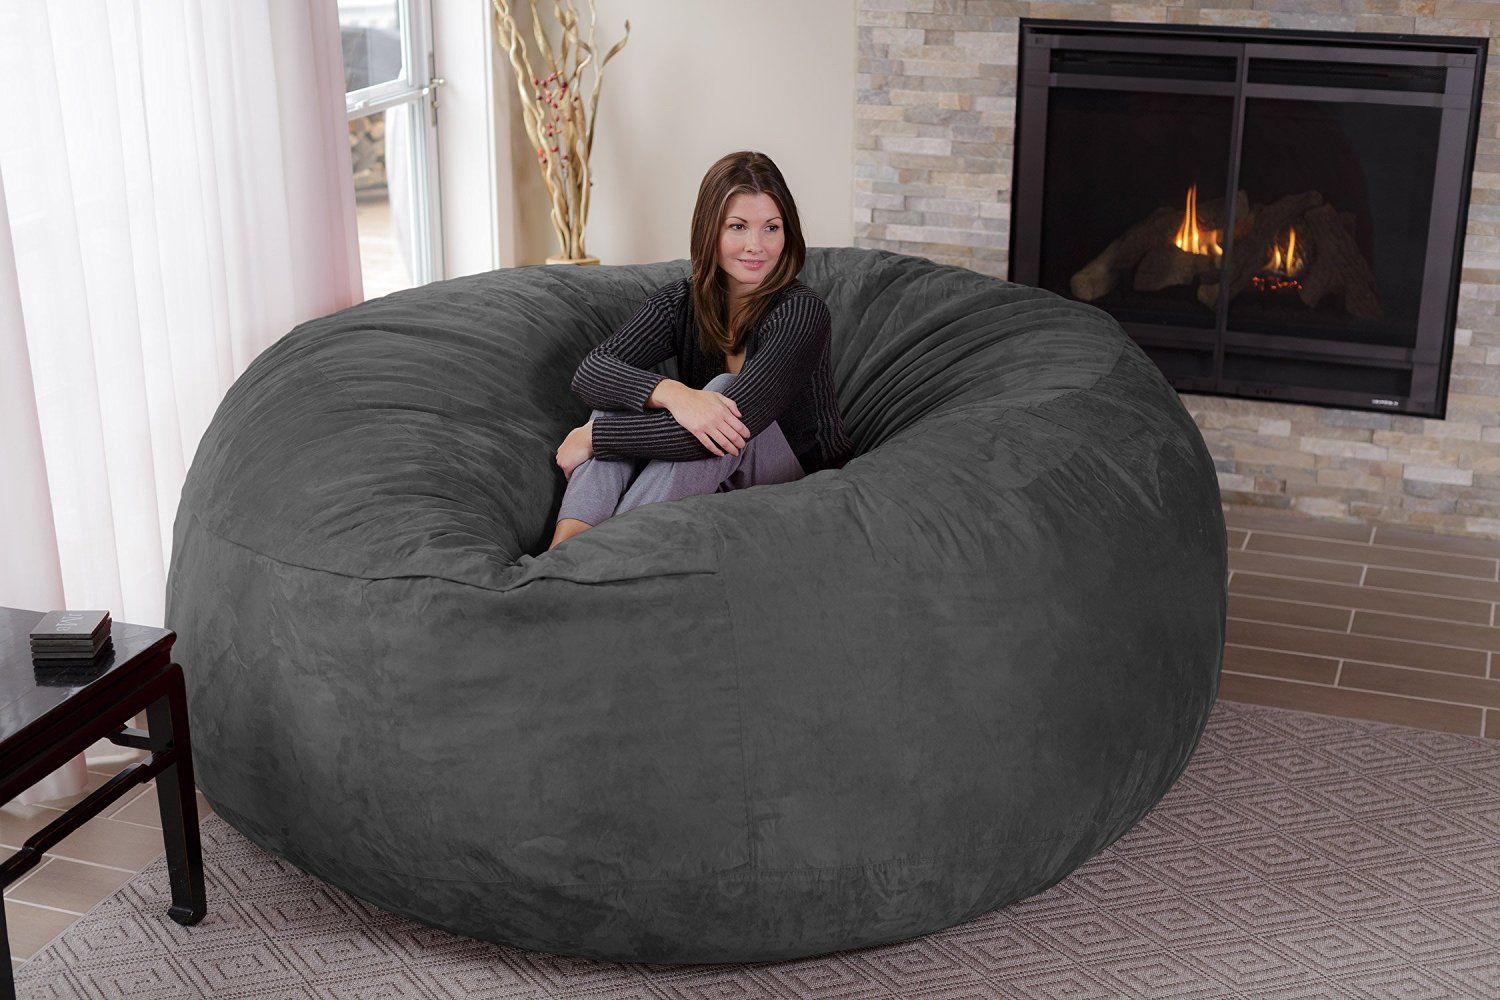 Chill Bag Giant 8 Feet Bean Bag Every Home Should Have One